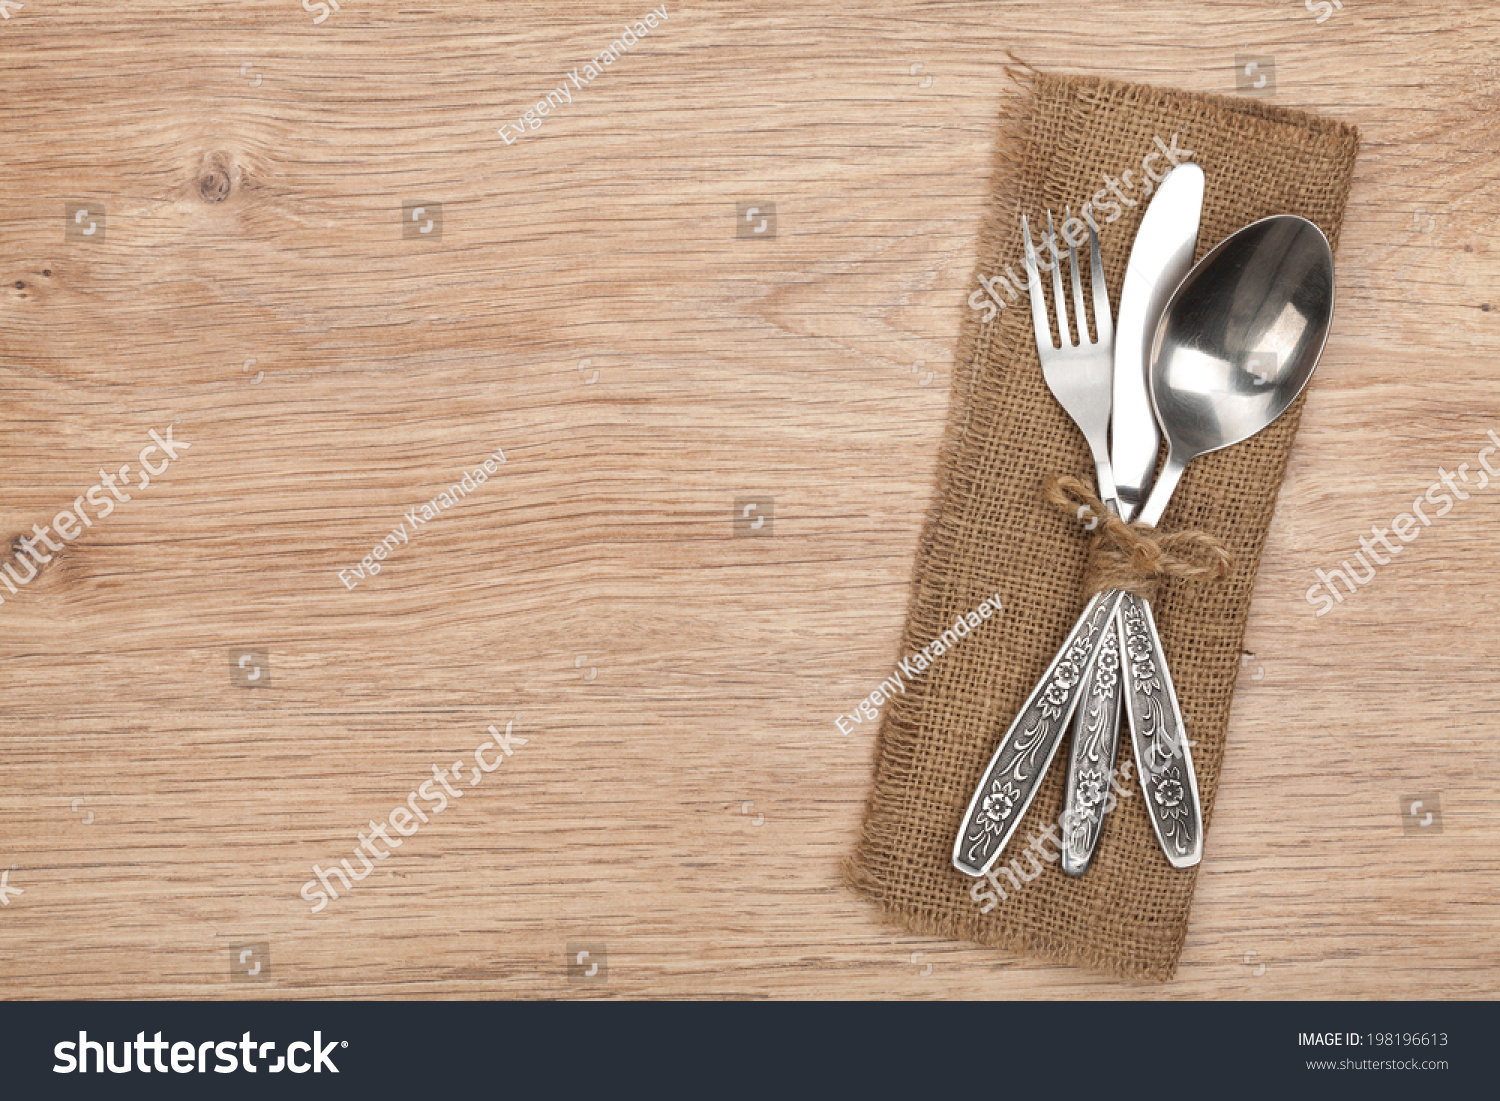 Silverware Or Flatware Set Of Fork Spoon And Knife On